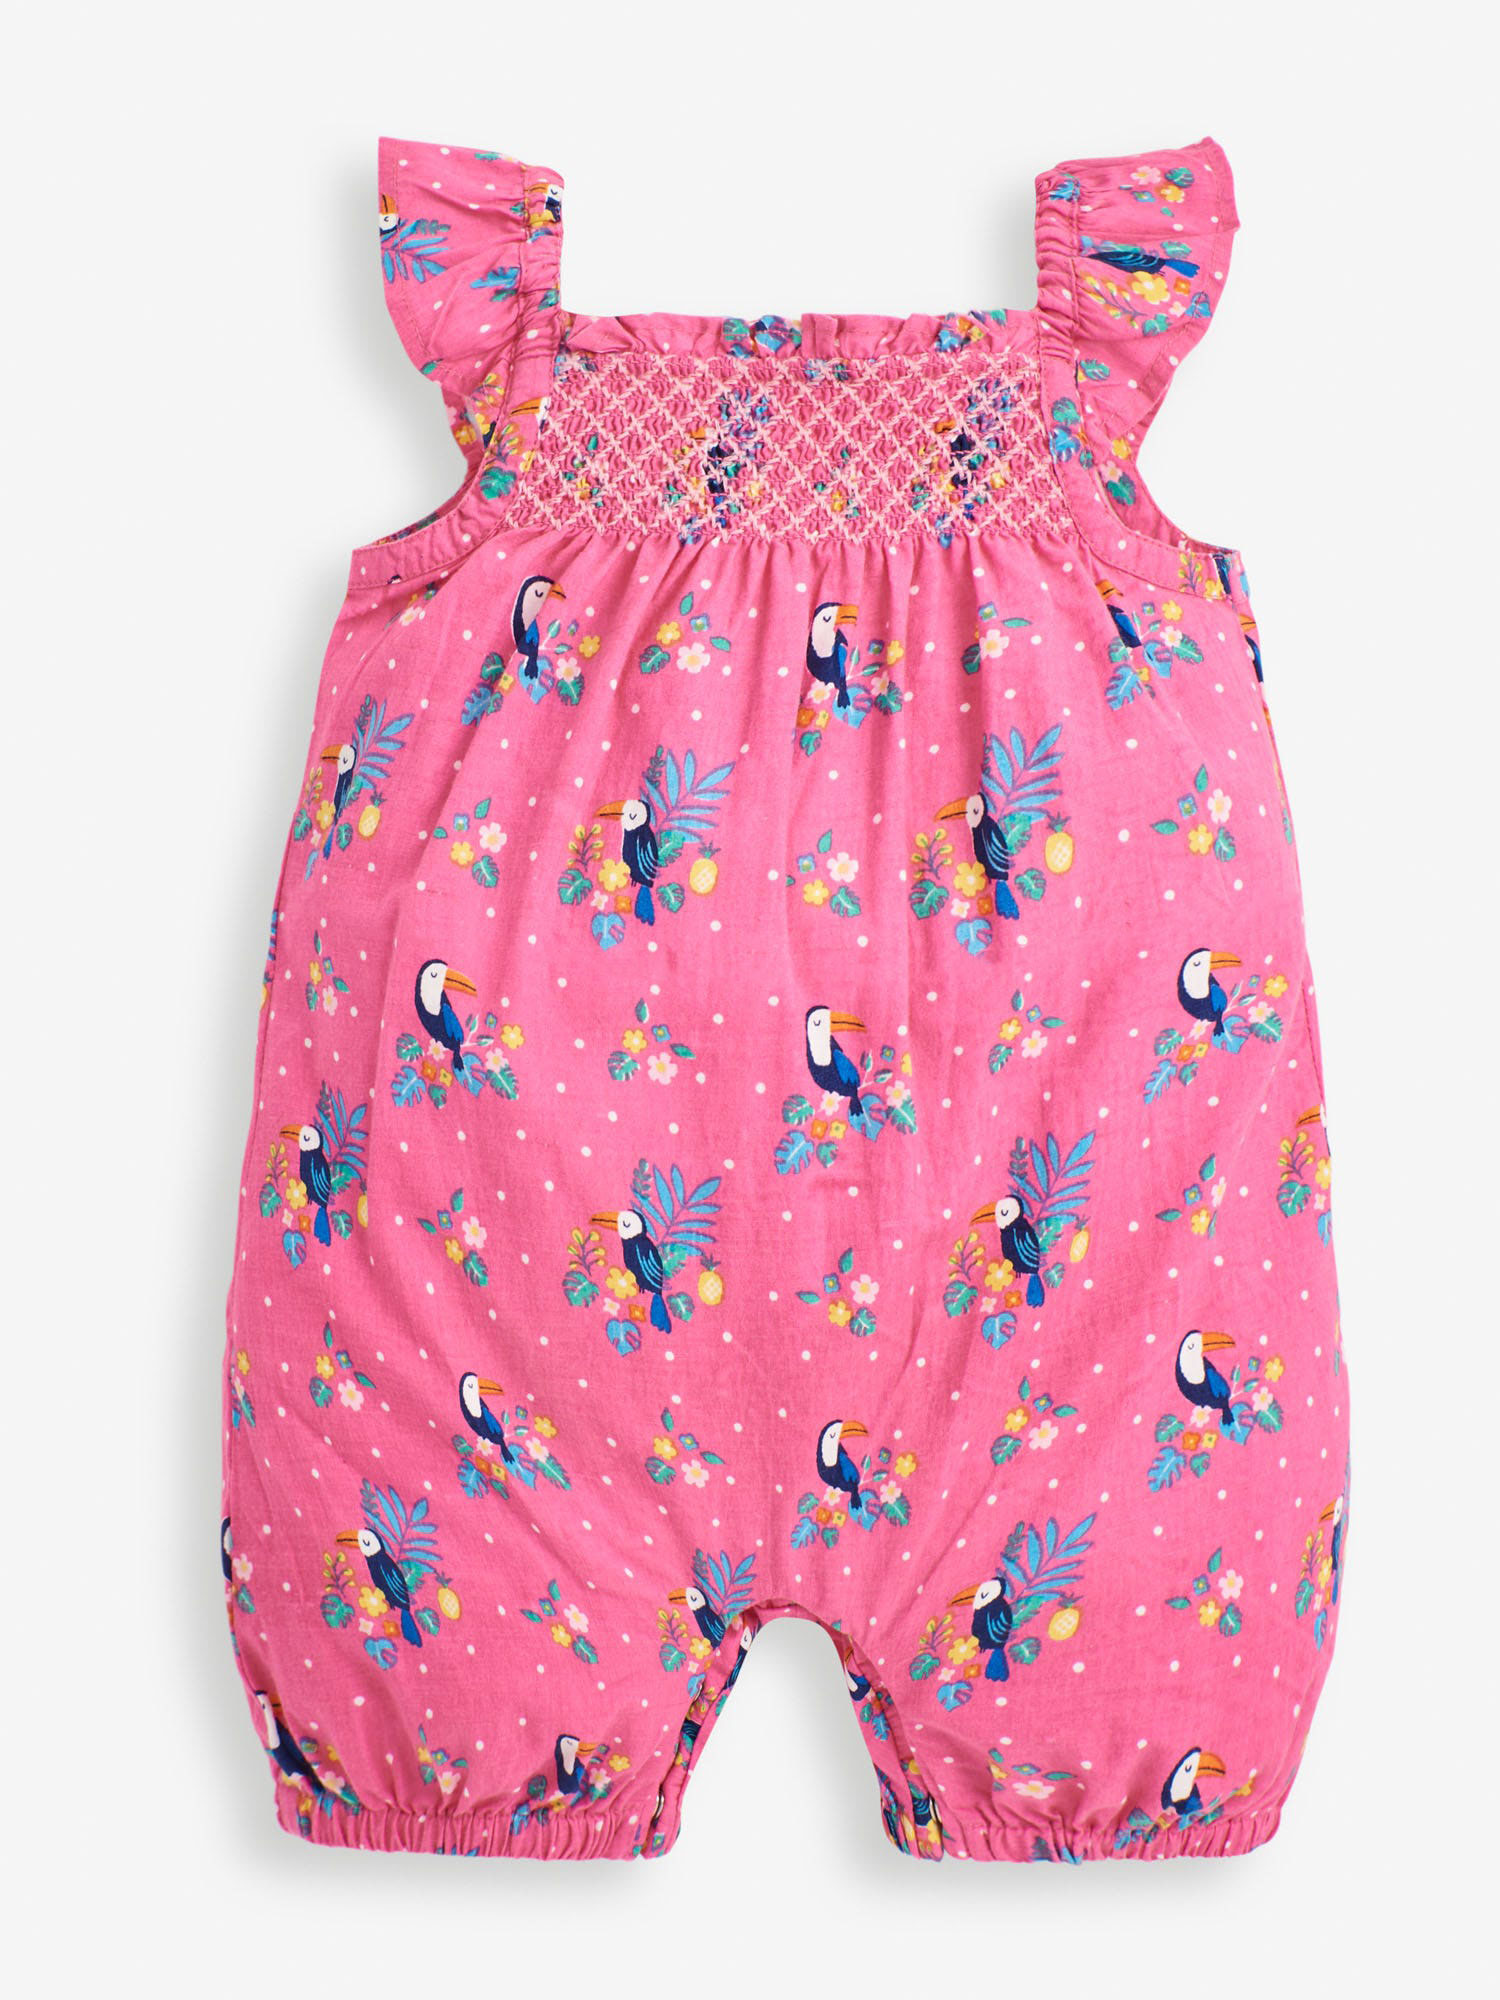 Orchid Toucan Smocked Baby Sunsuit